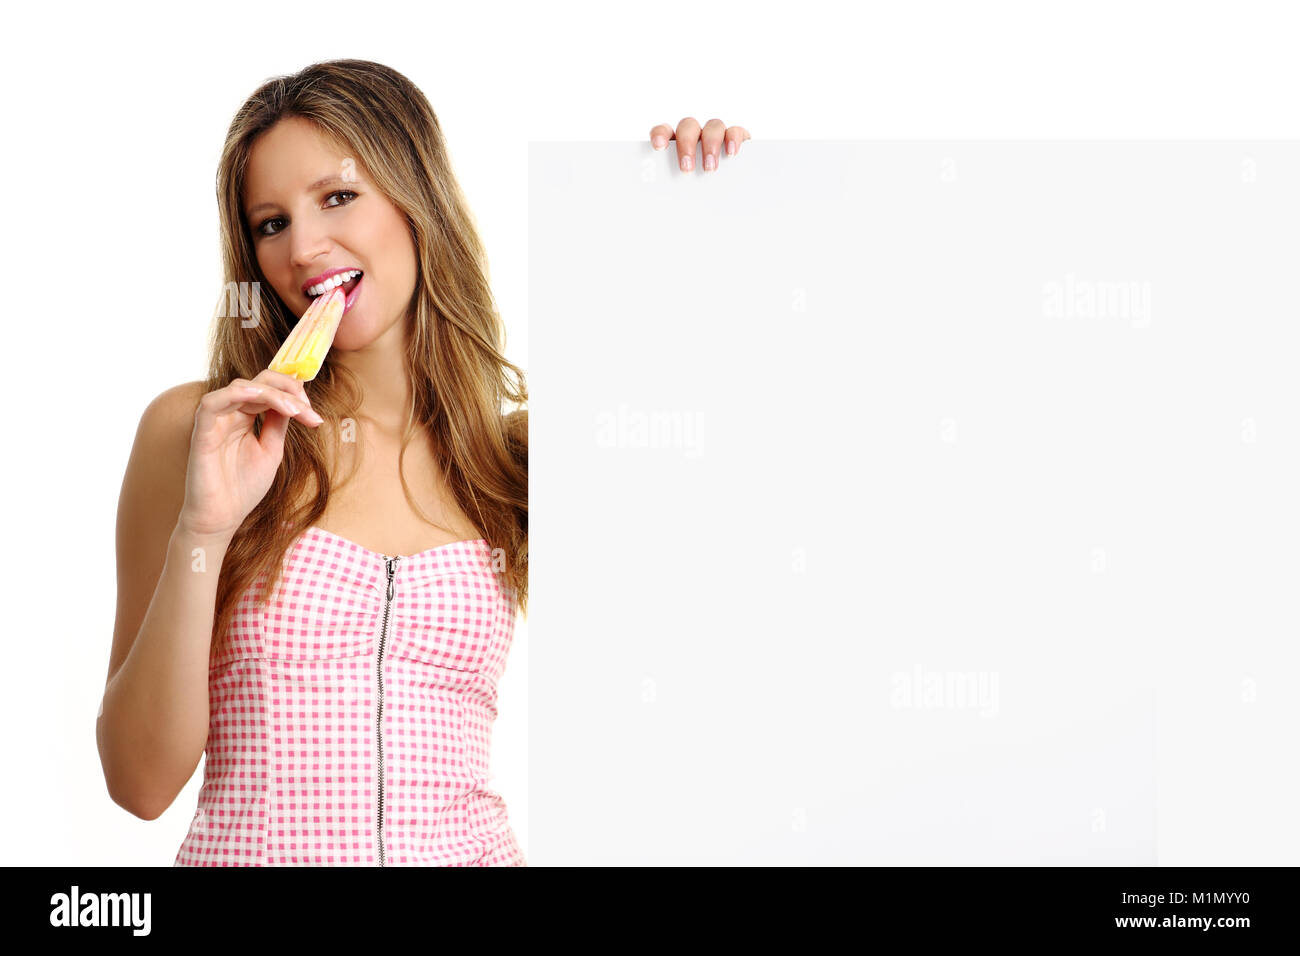 beautiful girl eating a popsicle - Stock Image